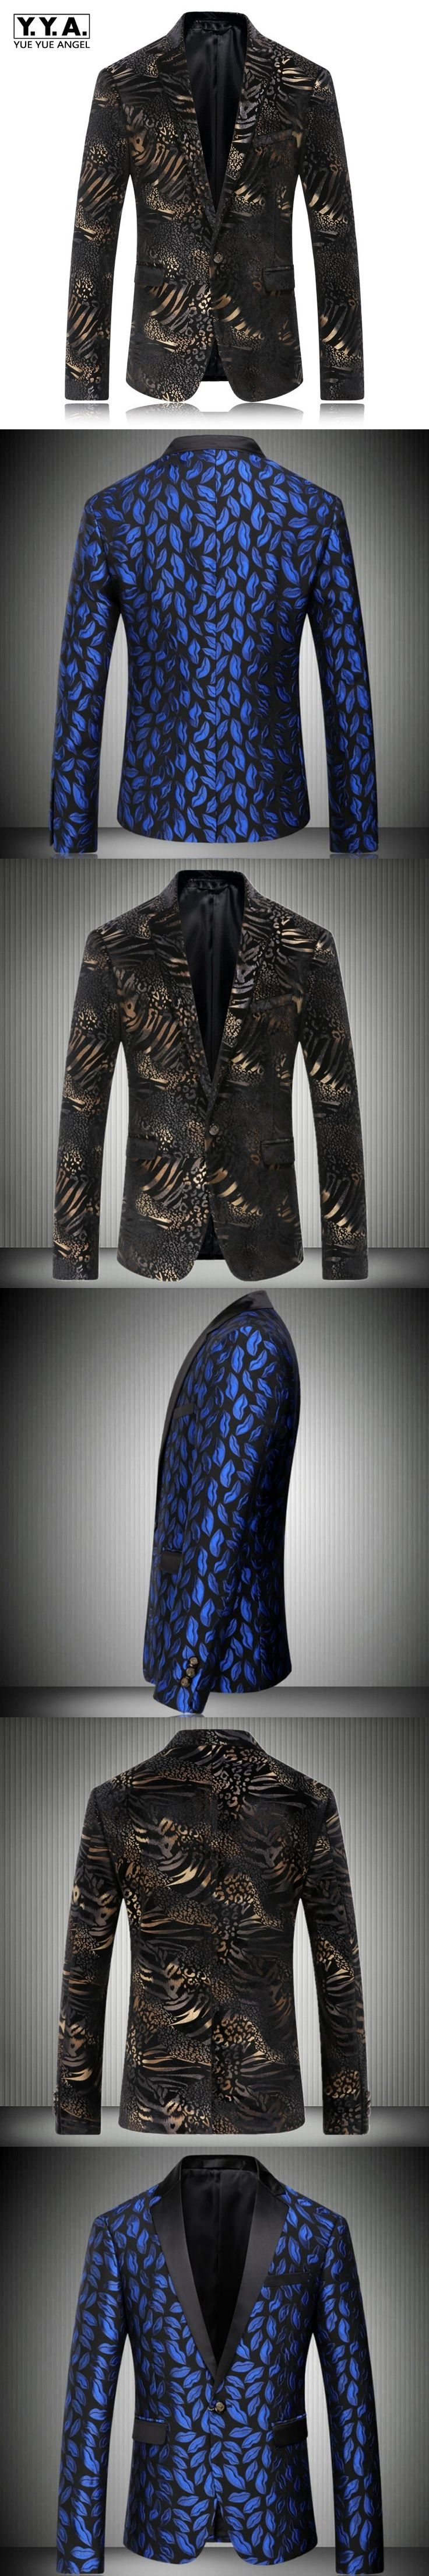 High Quality Fashion Royal Blue Mens Suit Coat Floral Printing Business Blazers Male Wedding Suit Formal Jackets Plus Size Free